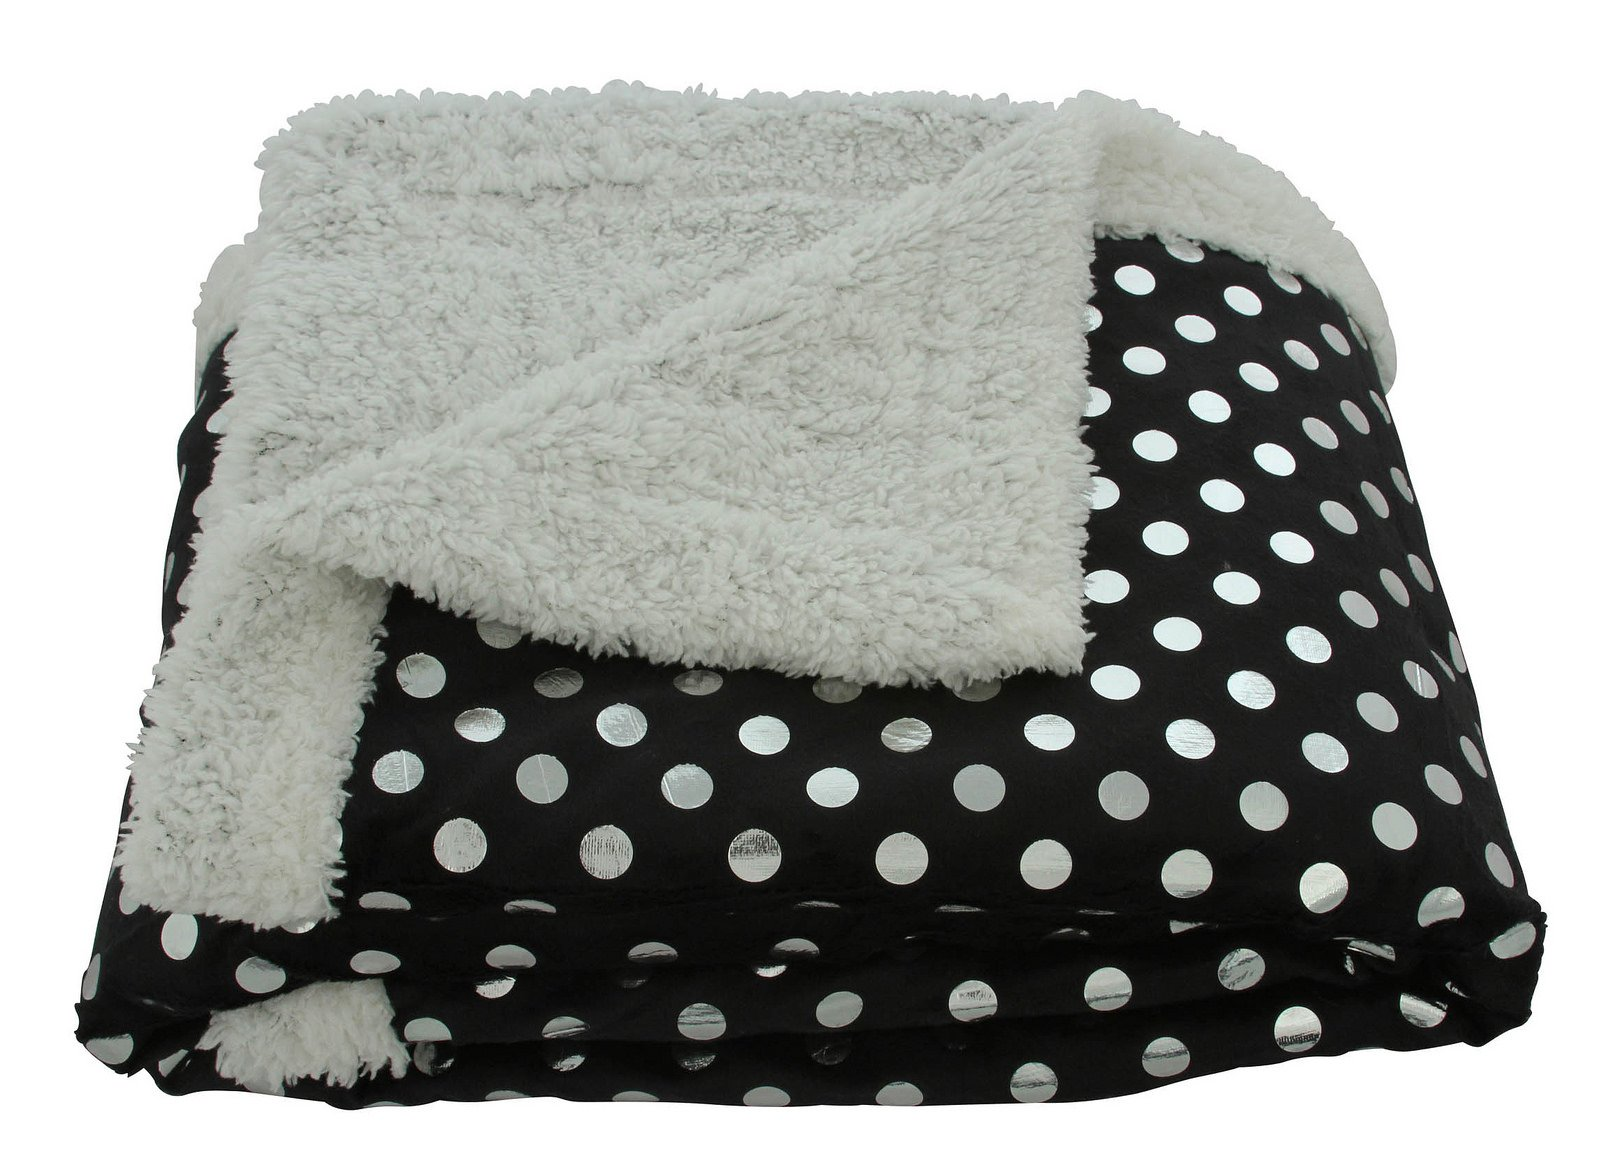 Sweet Home Collection Silver Dots Sherpa Reversible Poly Faux Lamb's Wool Throw Blanket, Black, 50'' x 60''